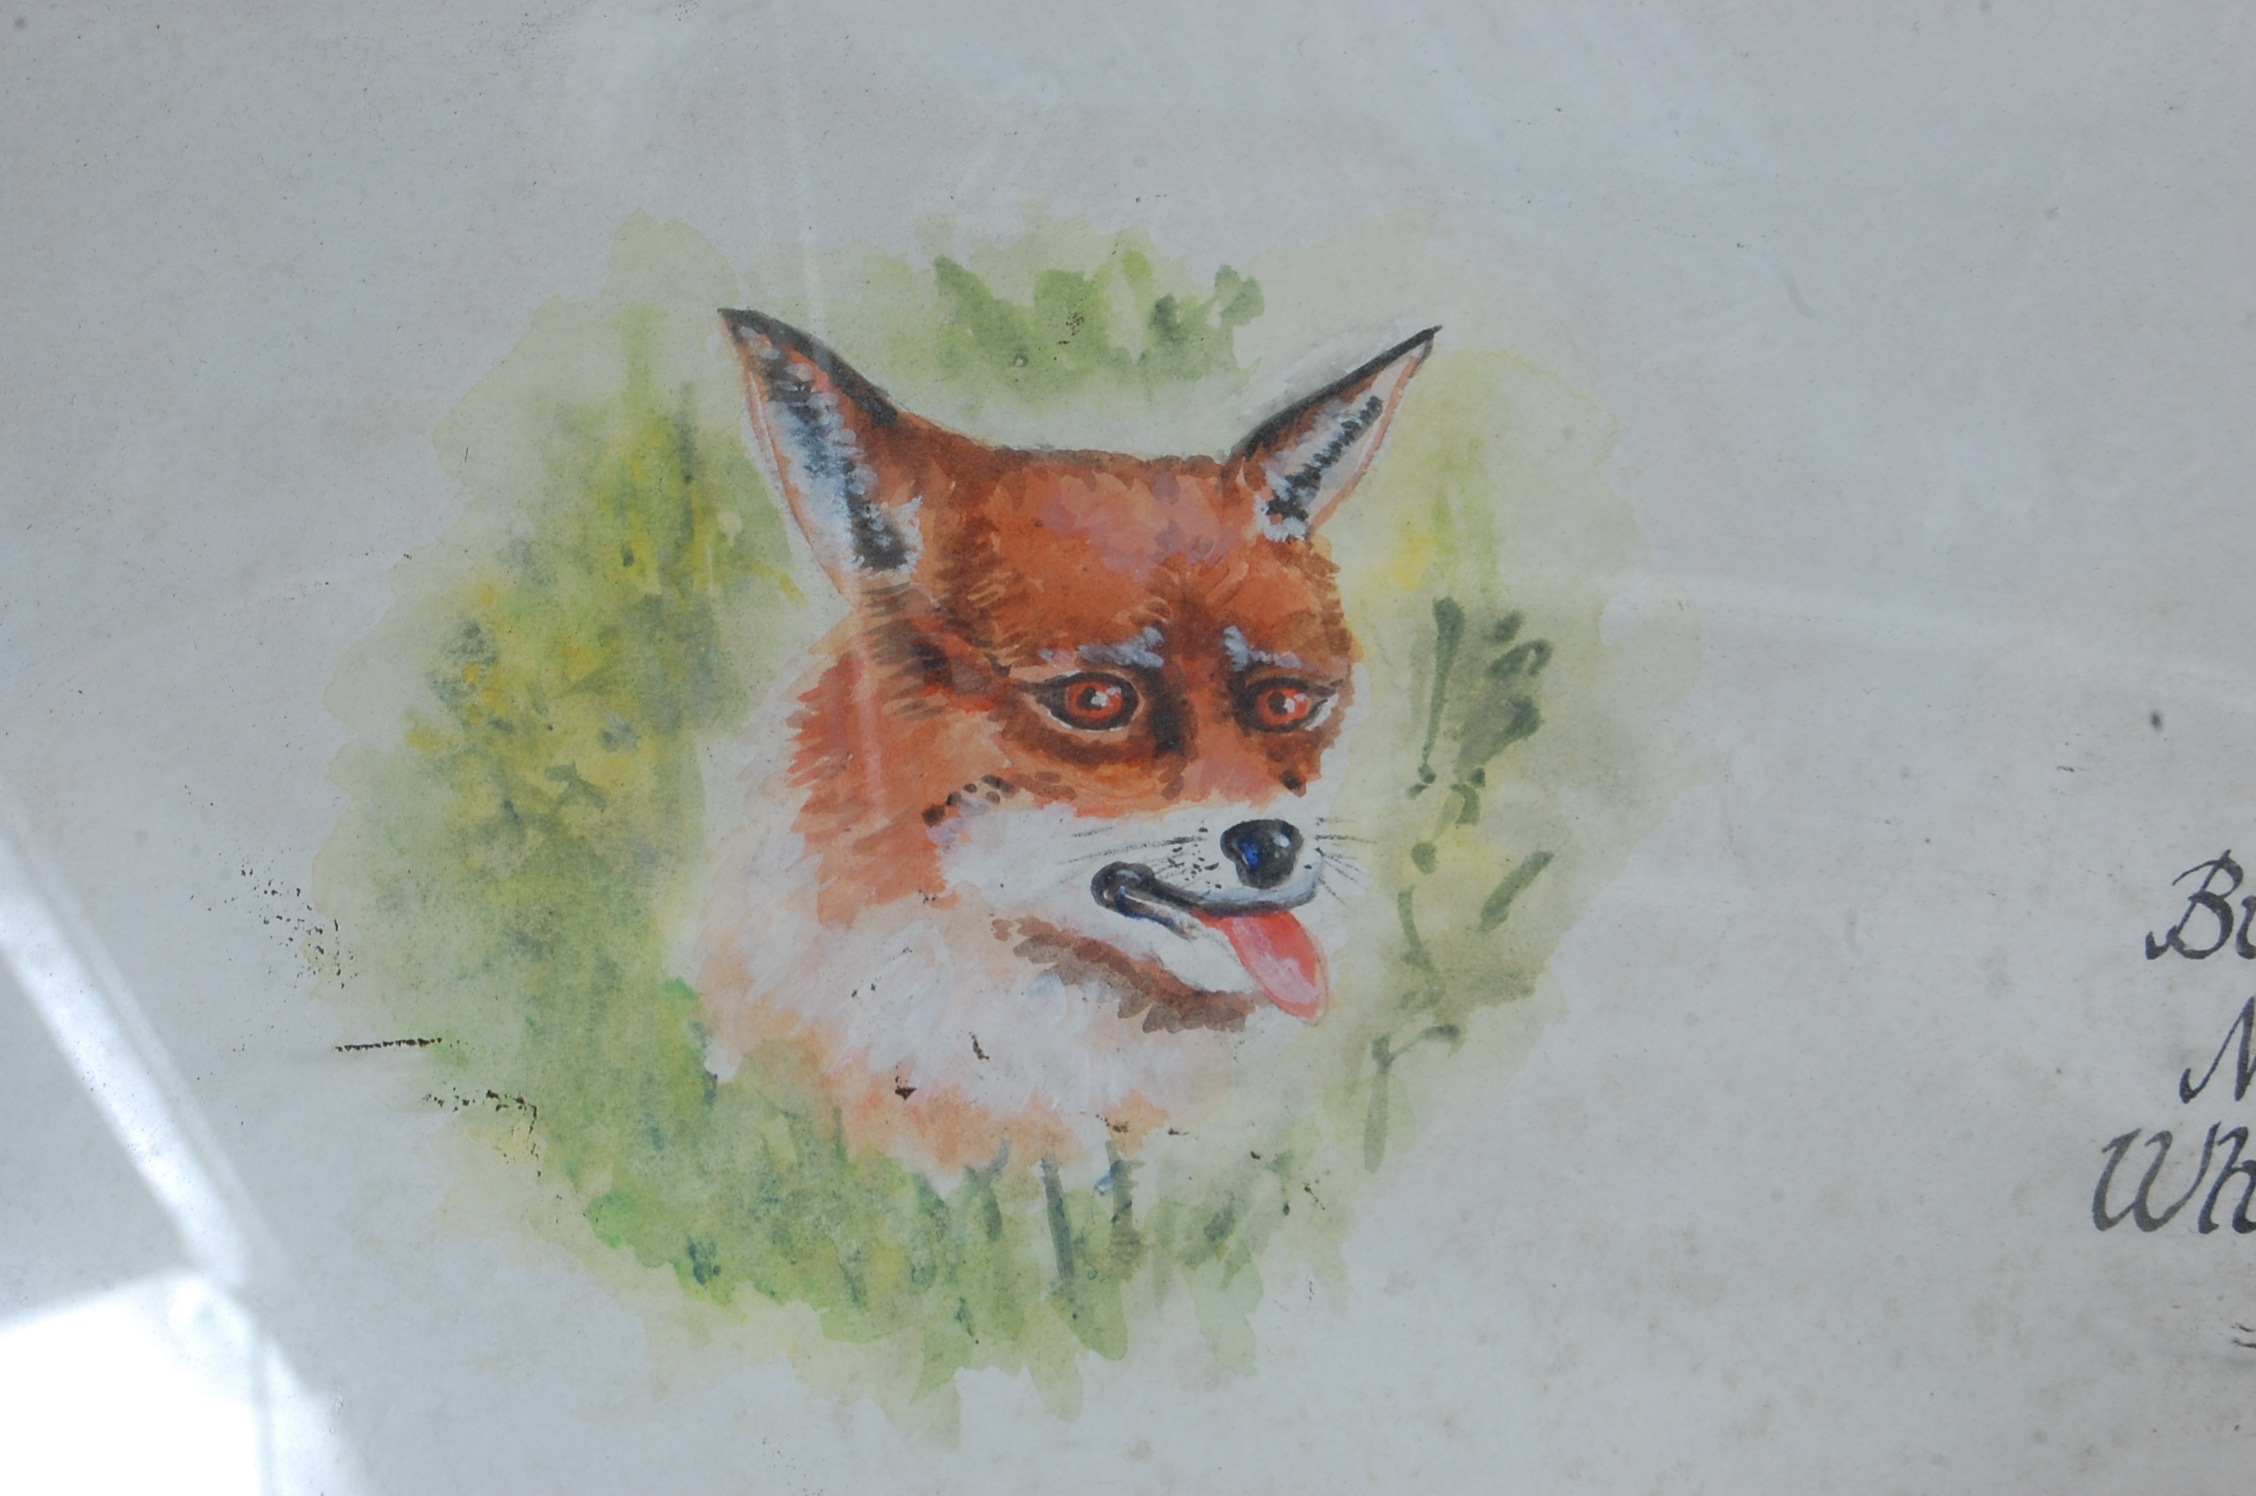 LARGE VINTAGE LATE 20TH CENTURY FOXES PROPHECY PICTURE - Image 8 of 8